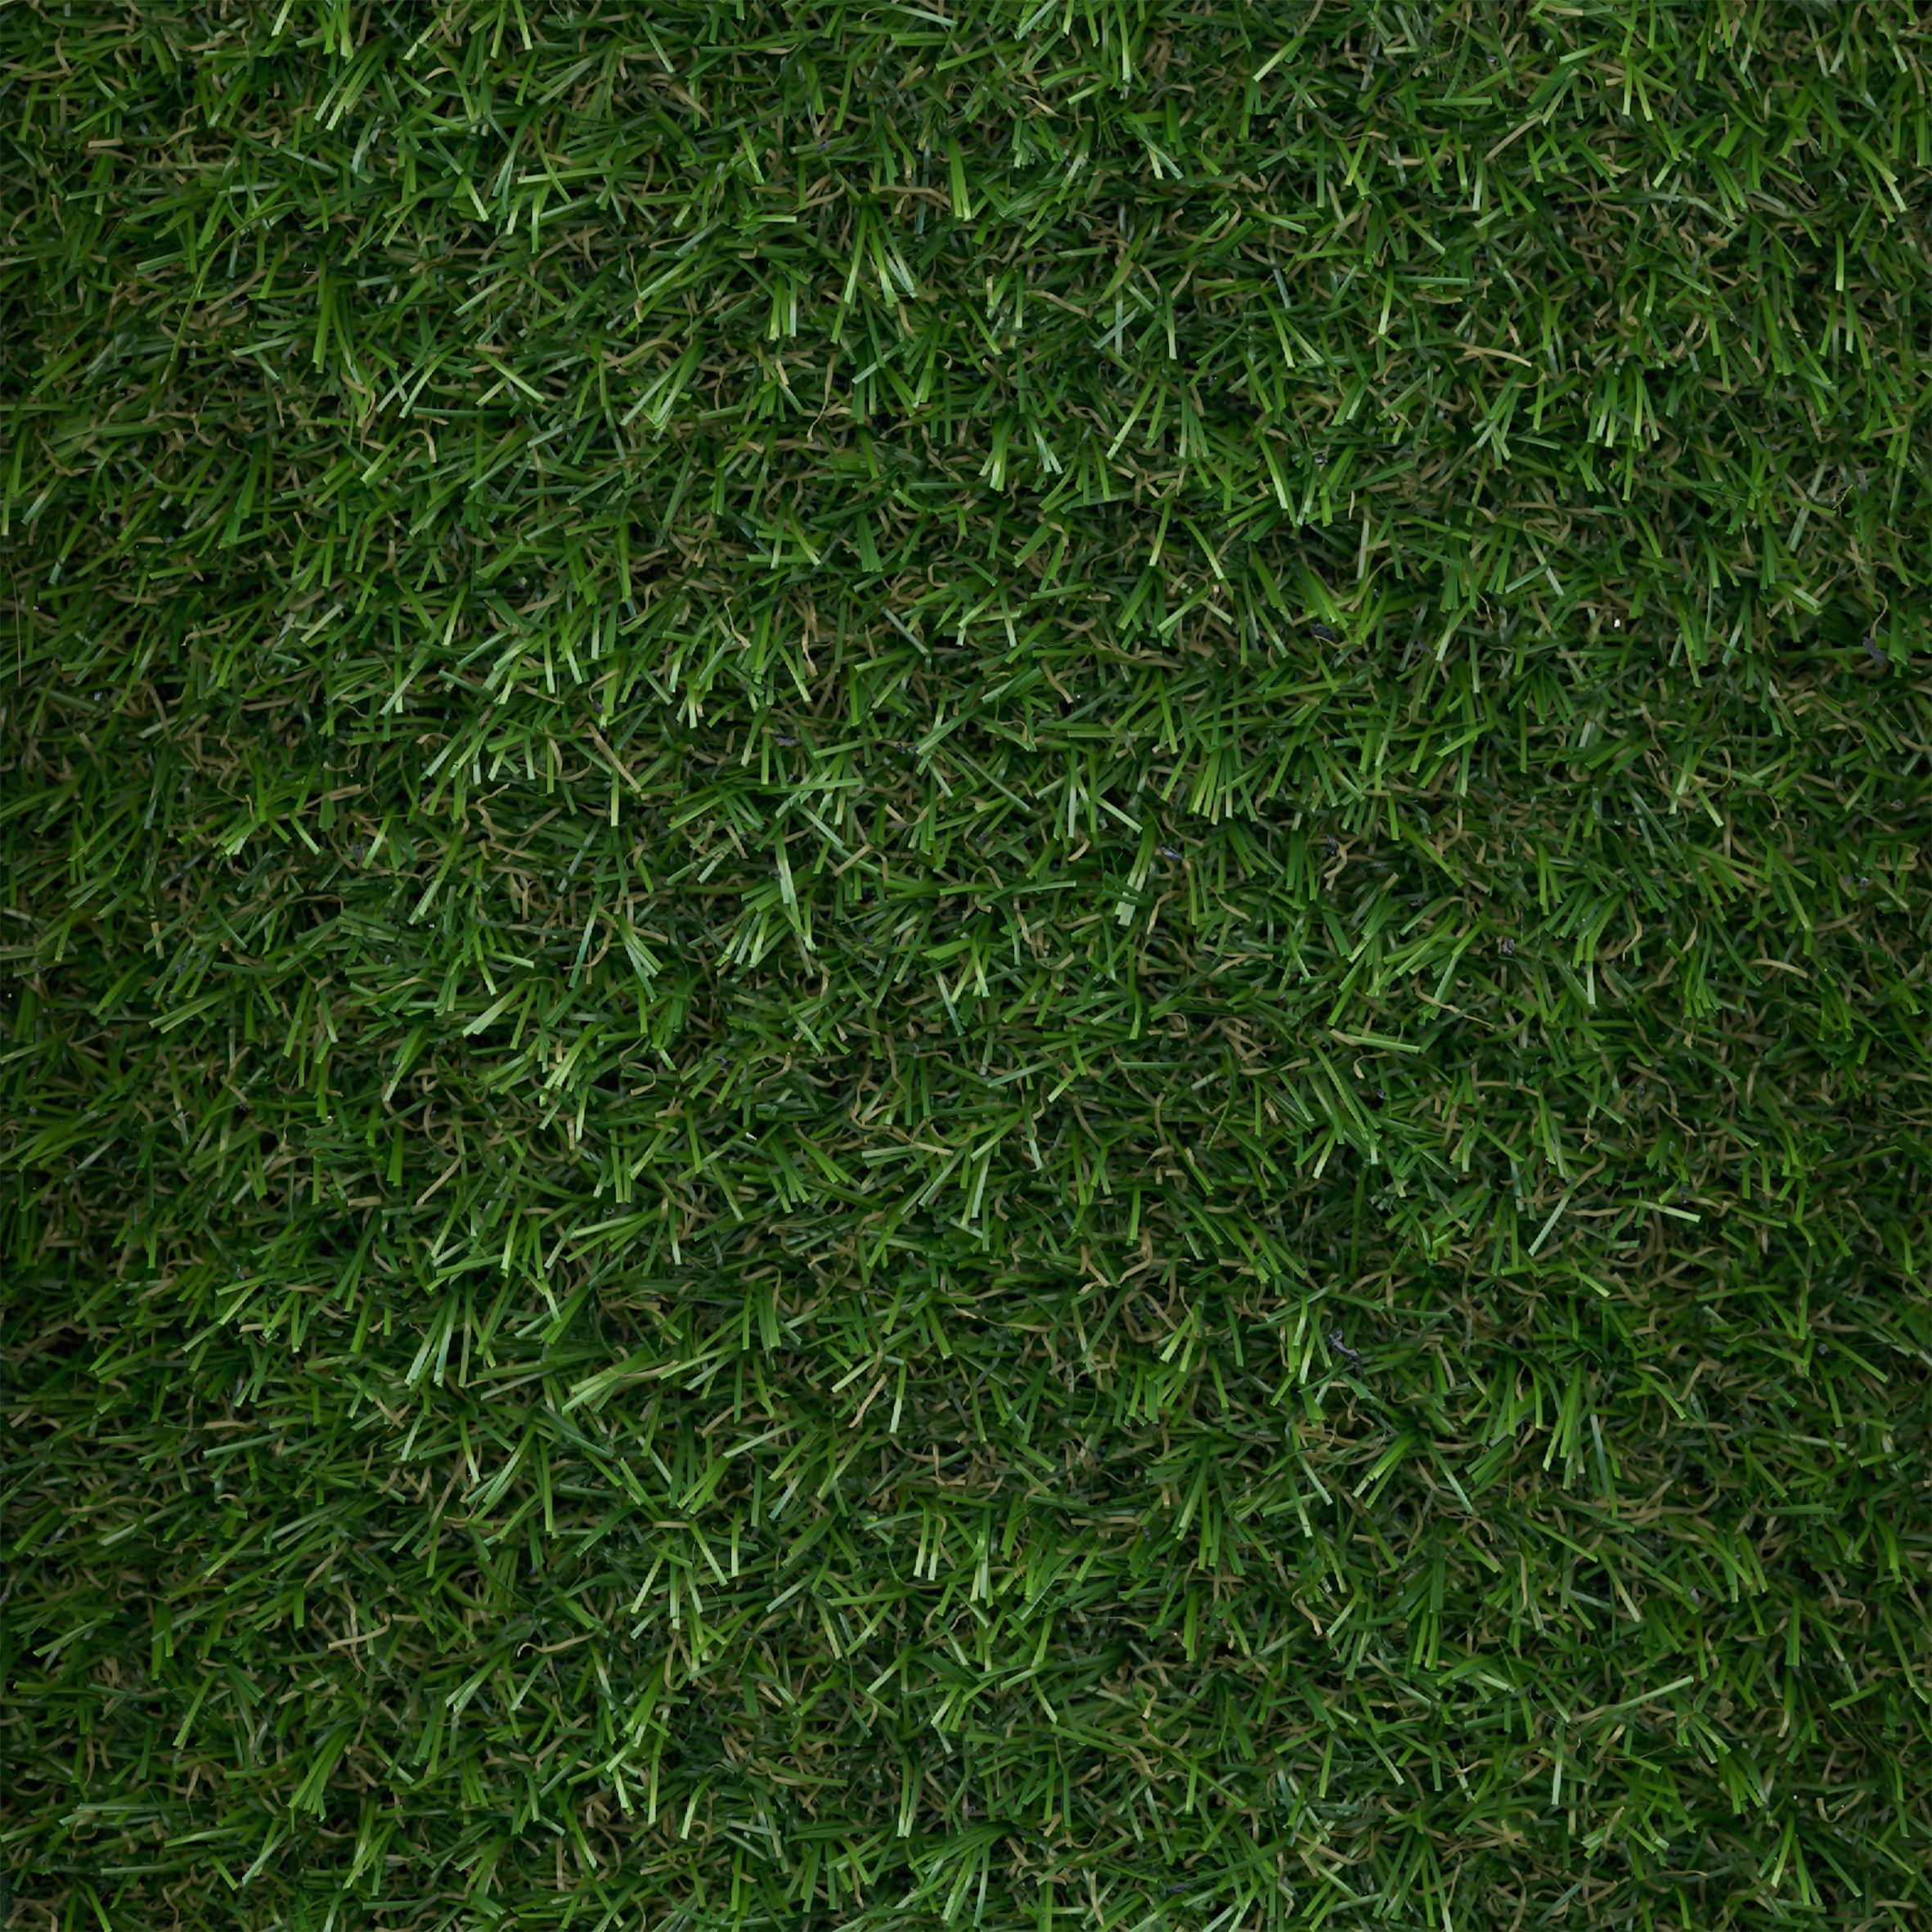 Eton Medium Density Artificial Grass W 4 M X L 1m X T 15mm Departments Diy At B Amp Q